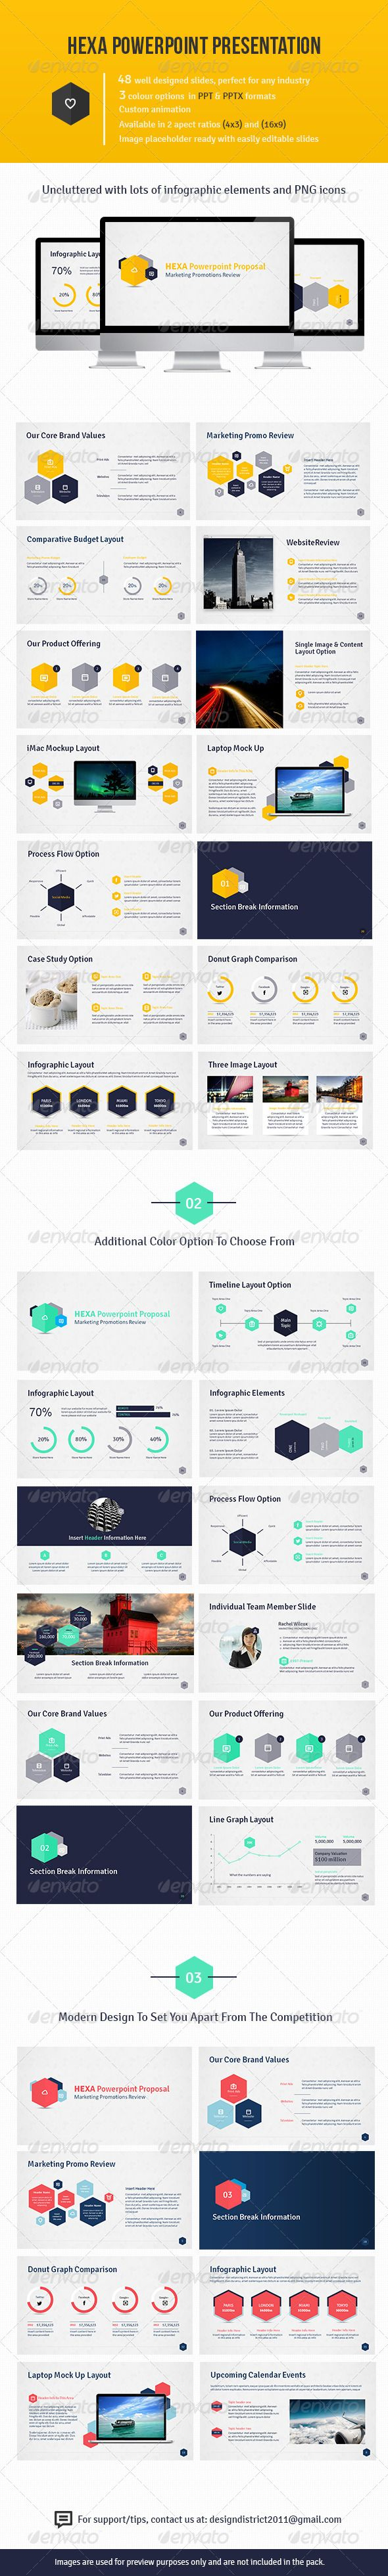 Hexa Powerpoint Presentation  #GraphicRiver         This Powerpoint Proposal has 48 slides that are easily editable. The hexa design is modern and will set you a part from your competition. The clean lines and light background gives focus to your content in a stylish way, making your content the main focus.  	 Features   48 slides in standard and widescreen formats (4:3 and 16:9)   3 colour option on light background  Png icons included  PPTX and PPT versions  Custom Animation  Image…